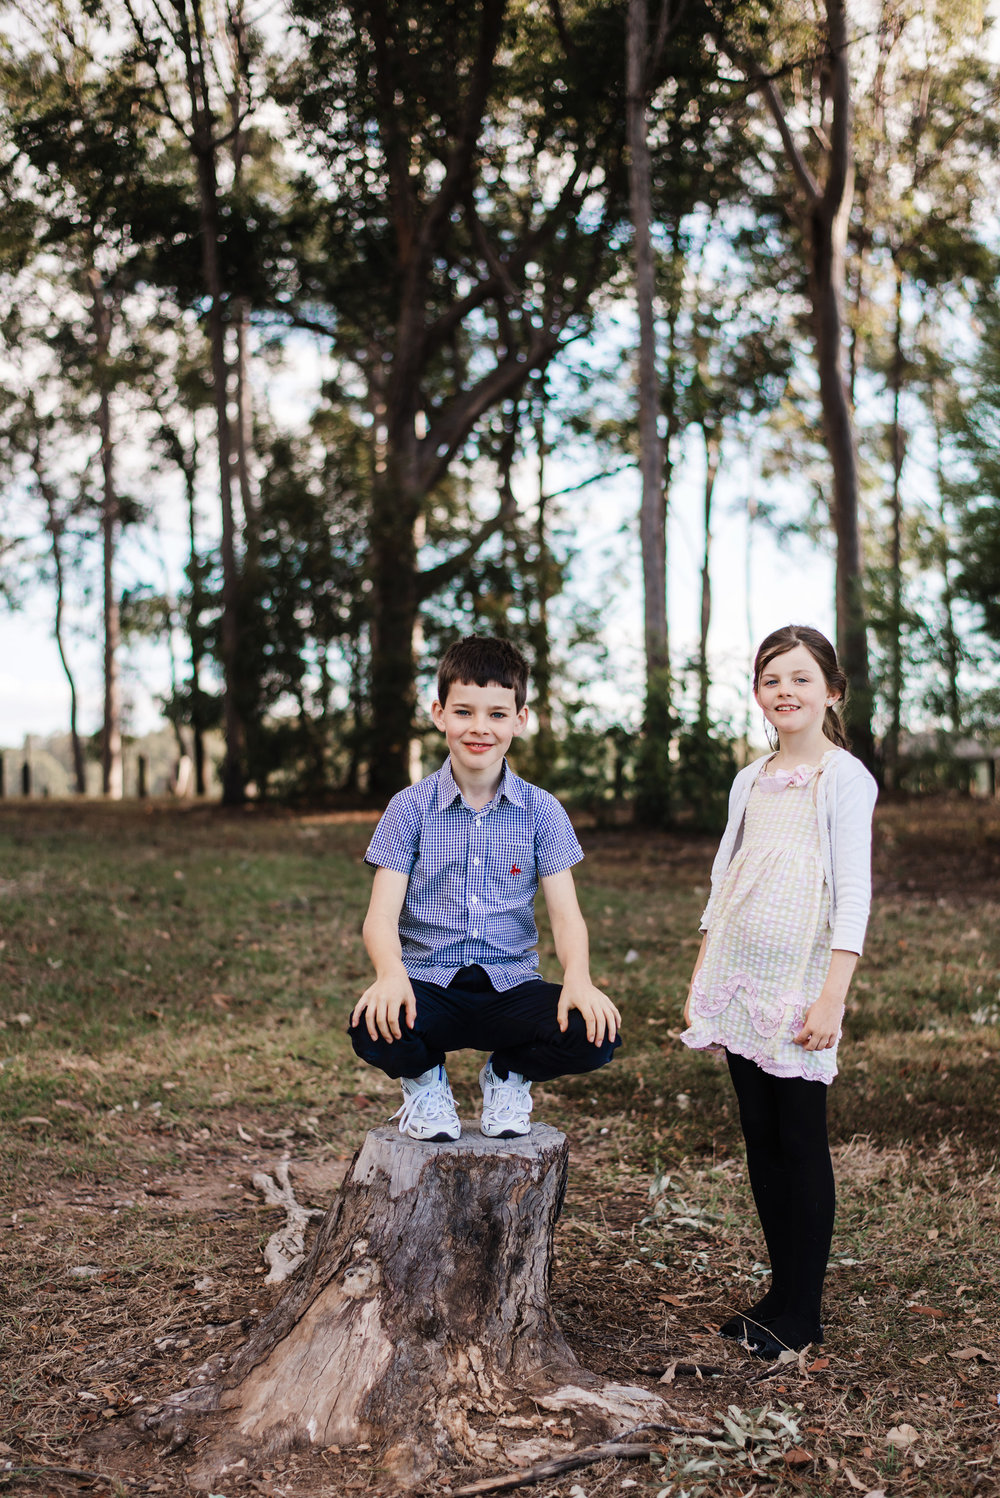 outdoor portrait of brother and sister